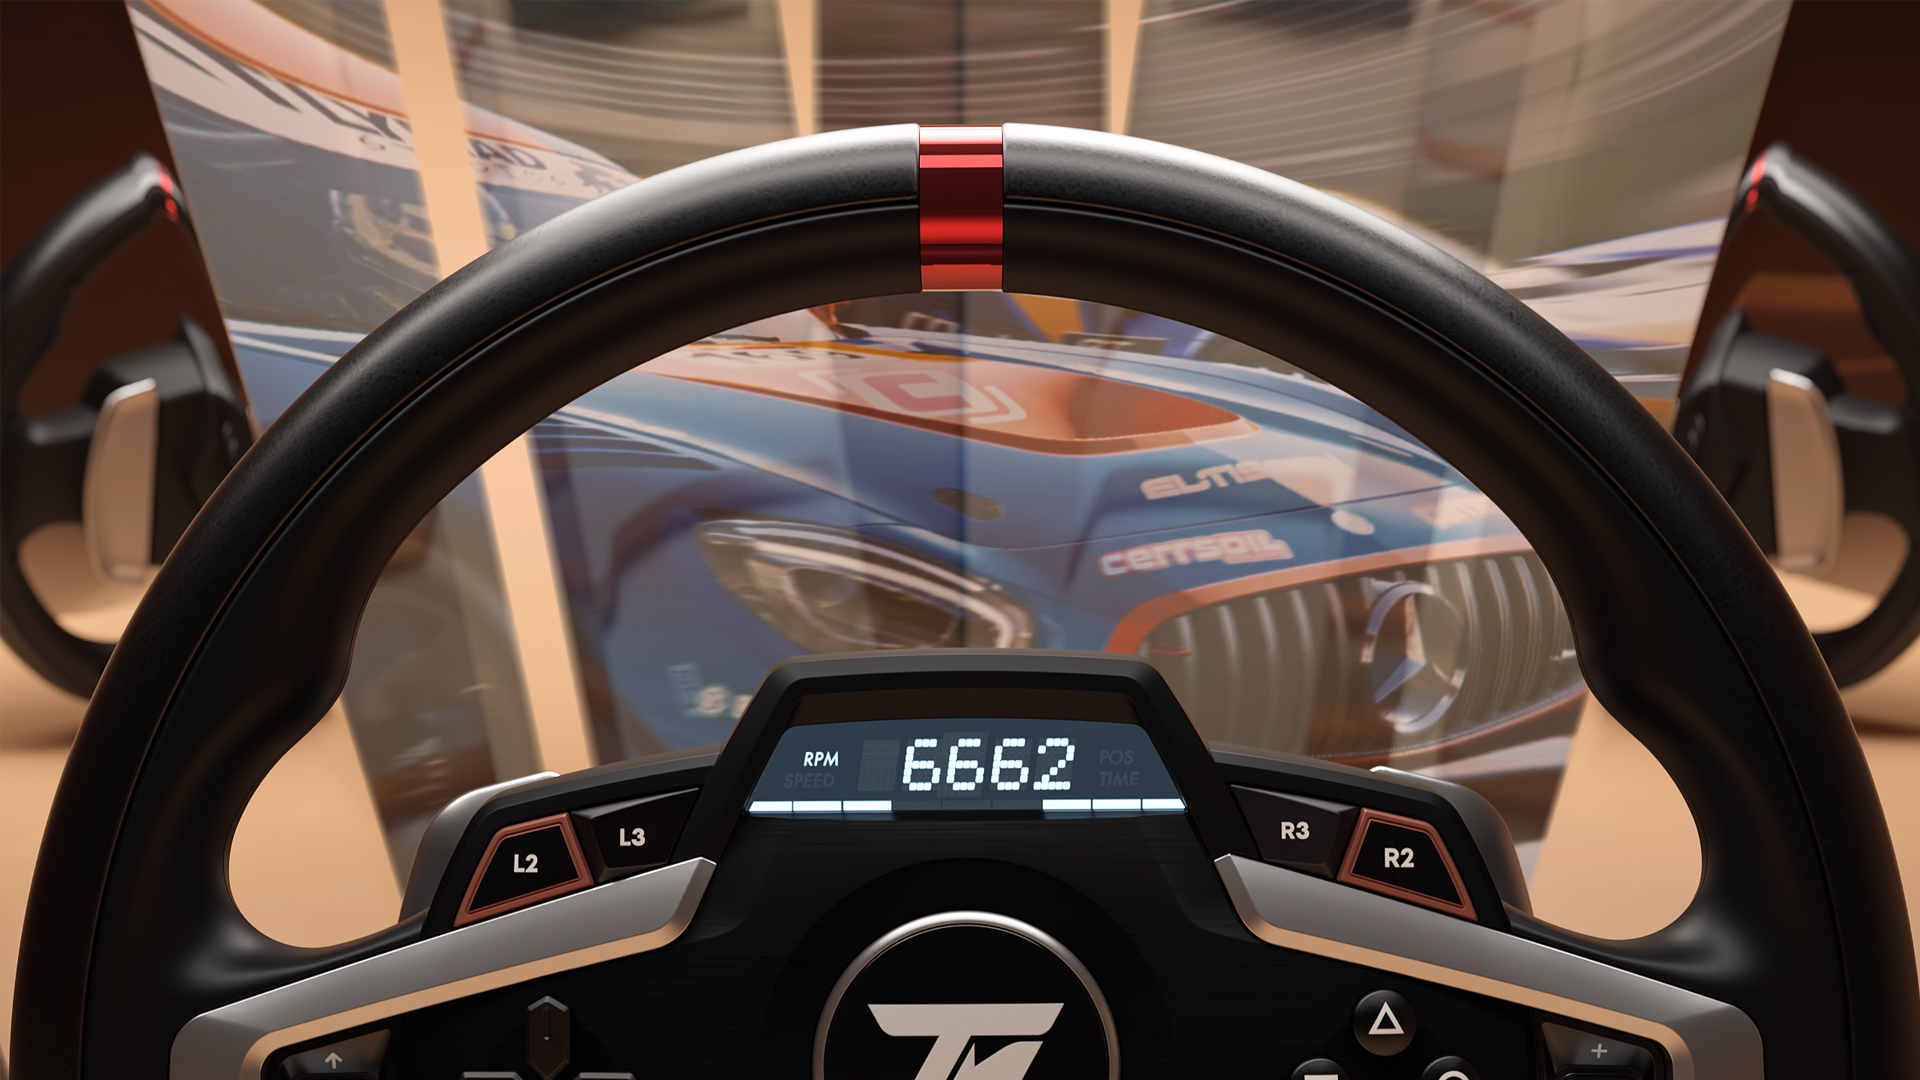 Thrustmaster T248 LCD display